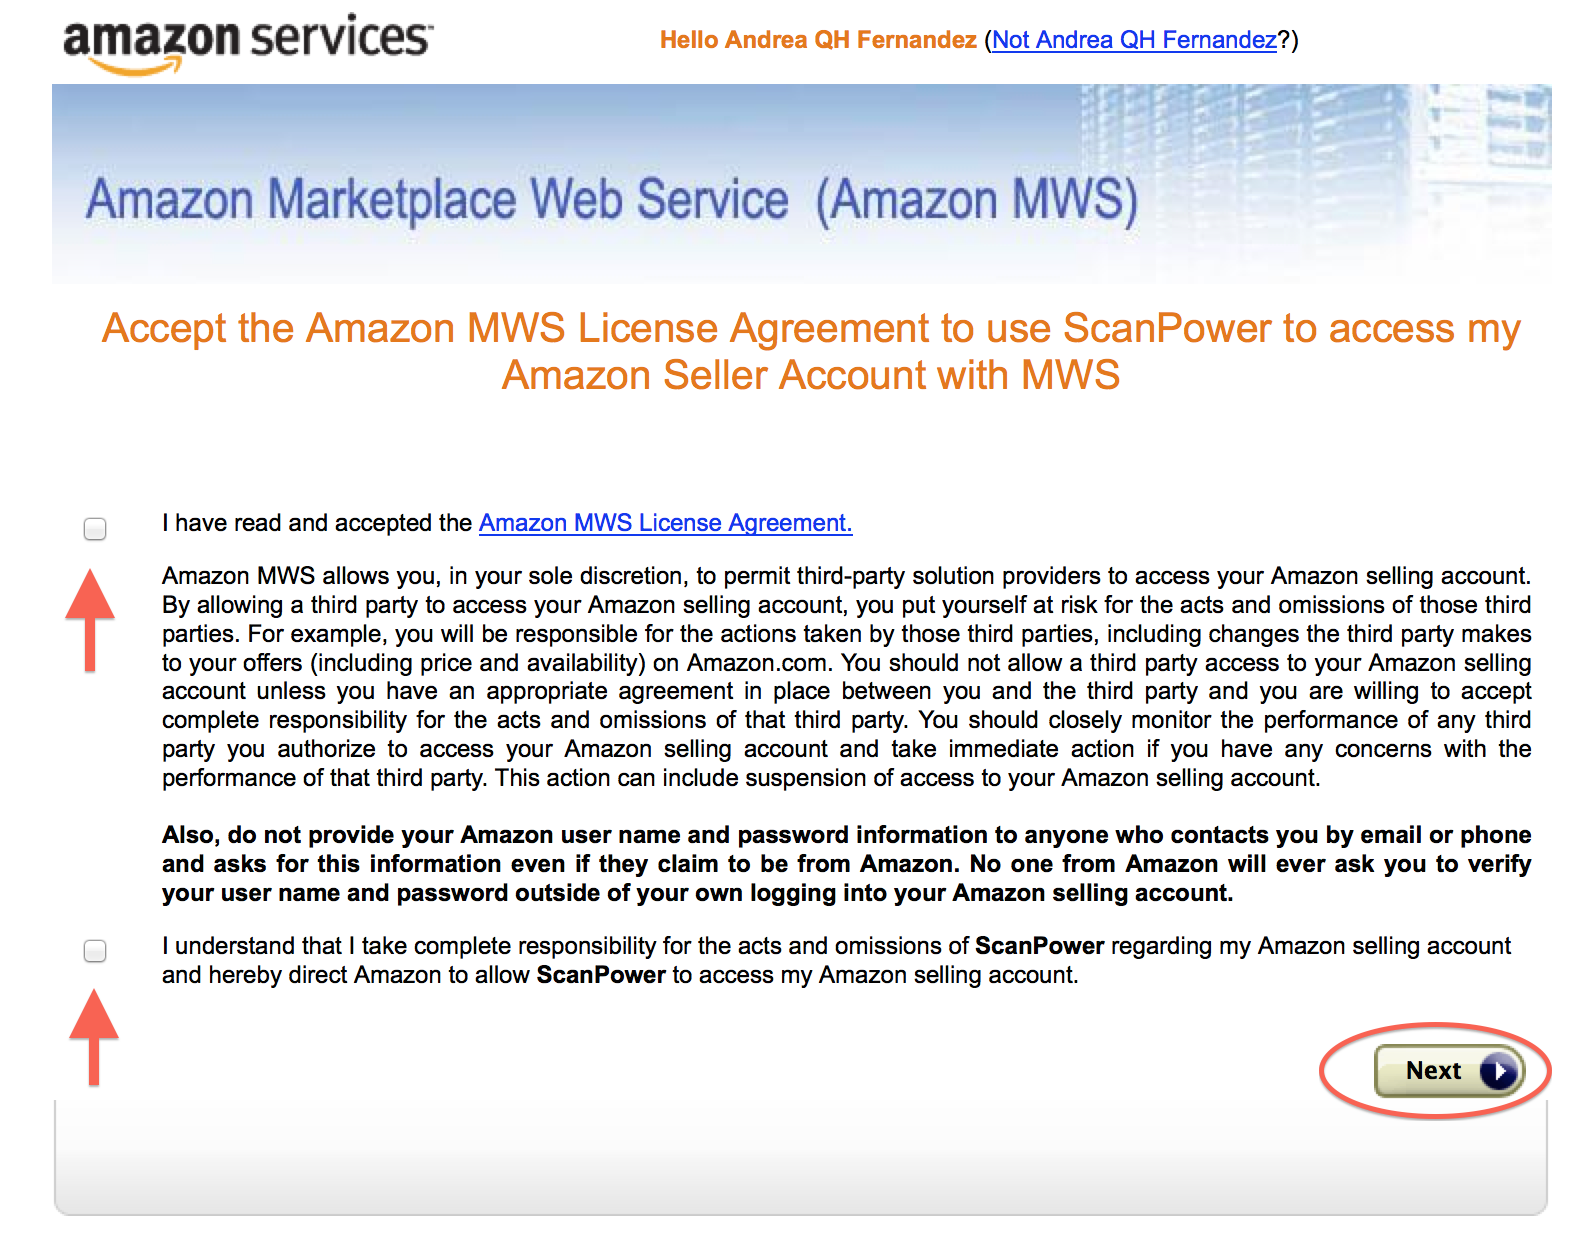 Next Proceed Through The Amazon Marketplace Web Service (MWS) Agreement  Page.